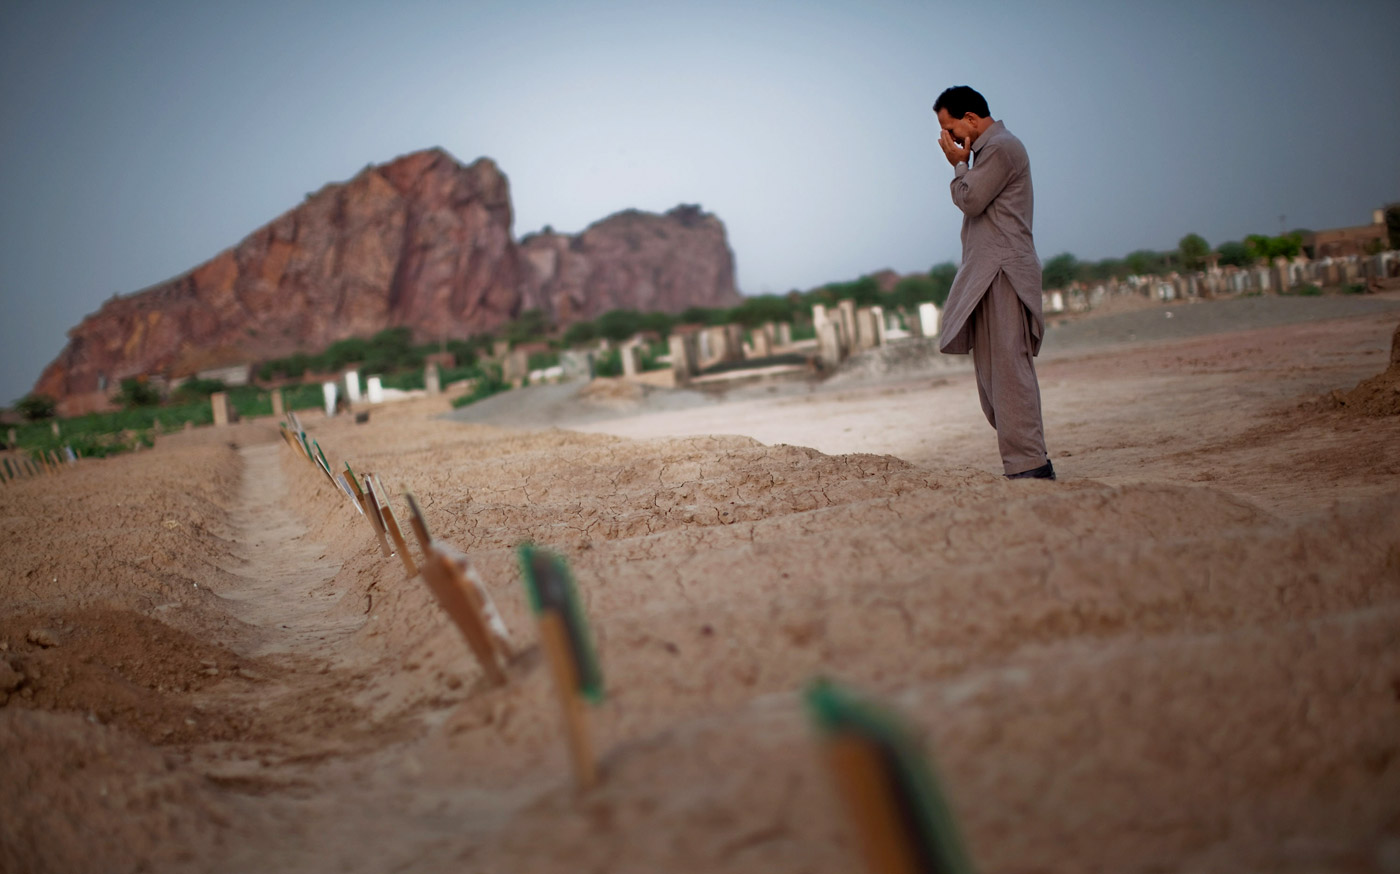 The graves in Rabwah of victims killed in the attack on Ahmadiyya mosques in Lahore in May 2010